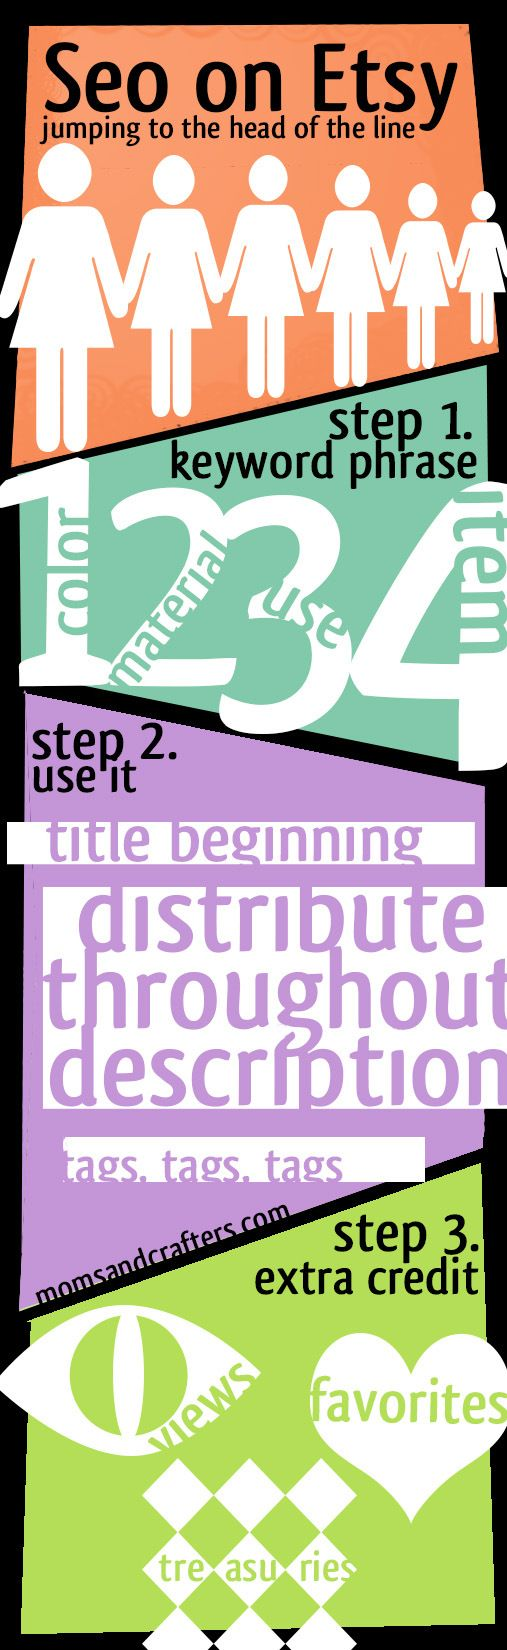 SEO on Etsy - Etsy Seller Tips - how to sell on etsy - an info graphic illustrating how SEO on Etsy works